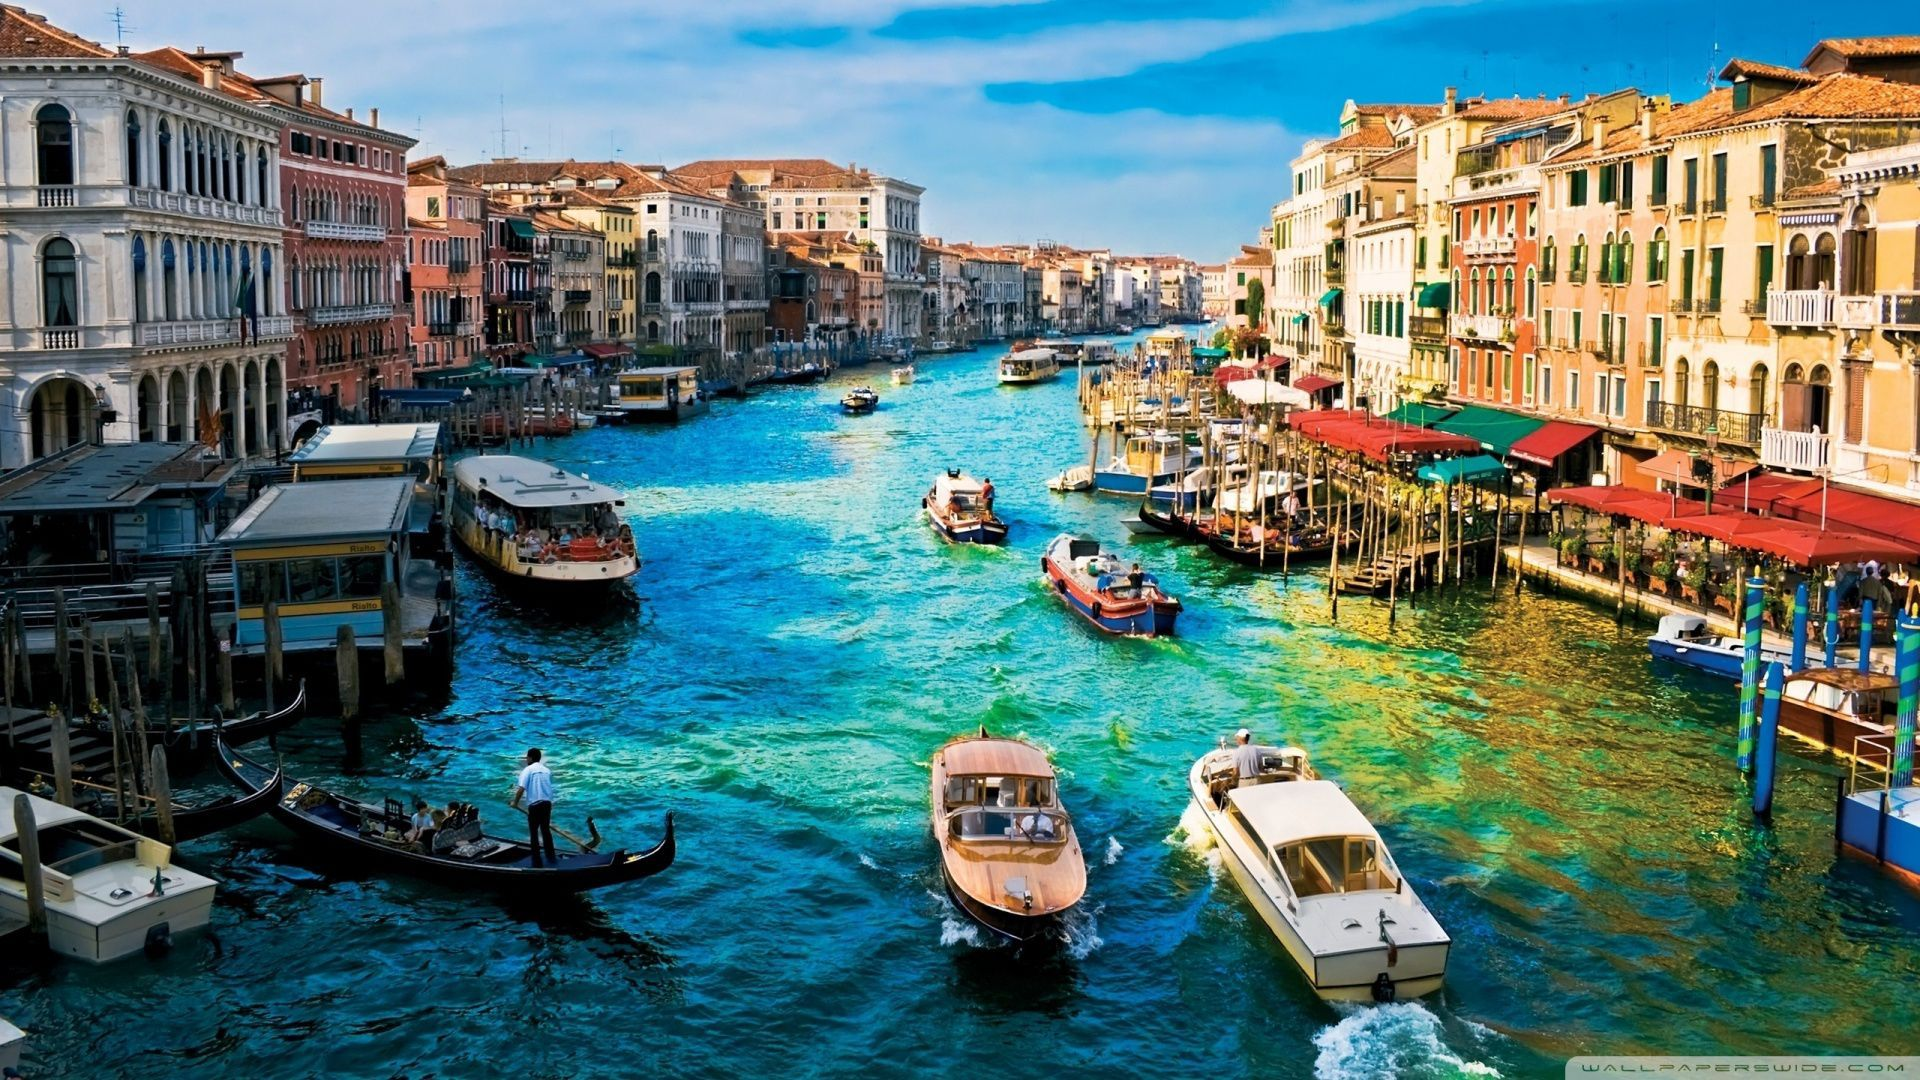 Venice Italy Venice A City On Water Is Rich With History It Was Once A Republic And Is Often Referred To As The Disneyland